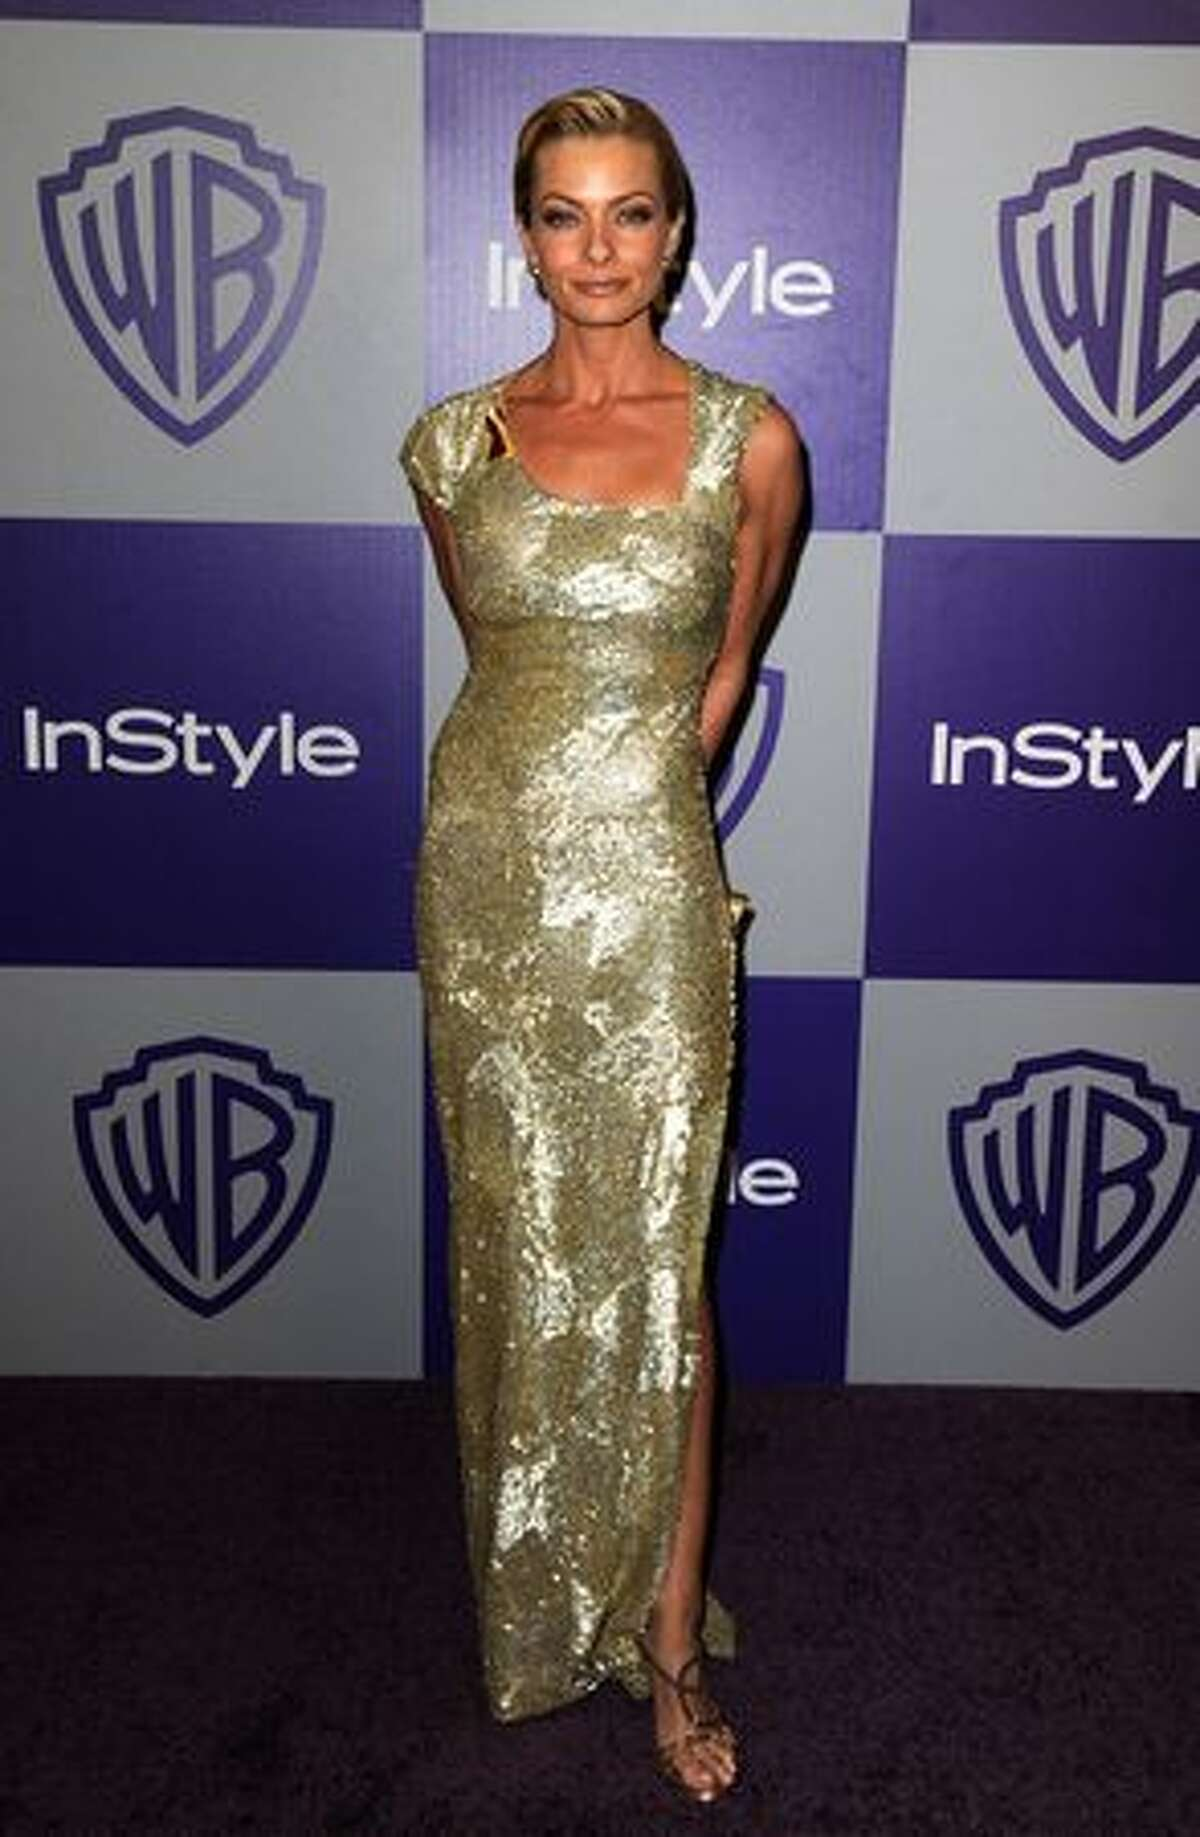 Actress Jaime Pressly arrives at the InStyle and Warner Bros. 67th Annual Golden Globes after party held at the Oasis Courtyard at The Beverly Hilton Hotel.